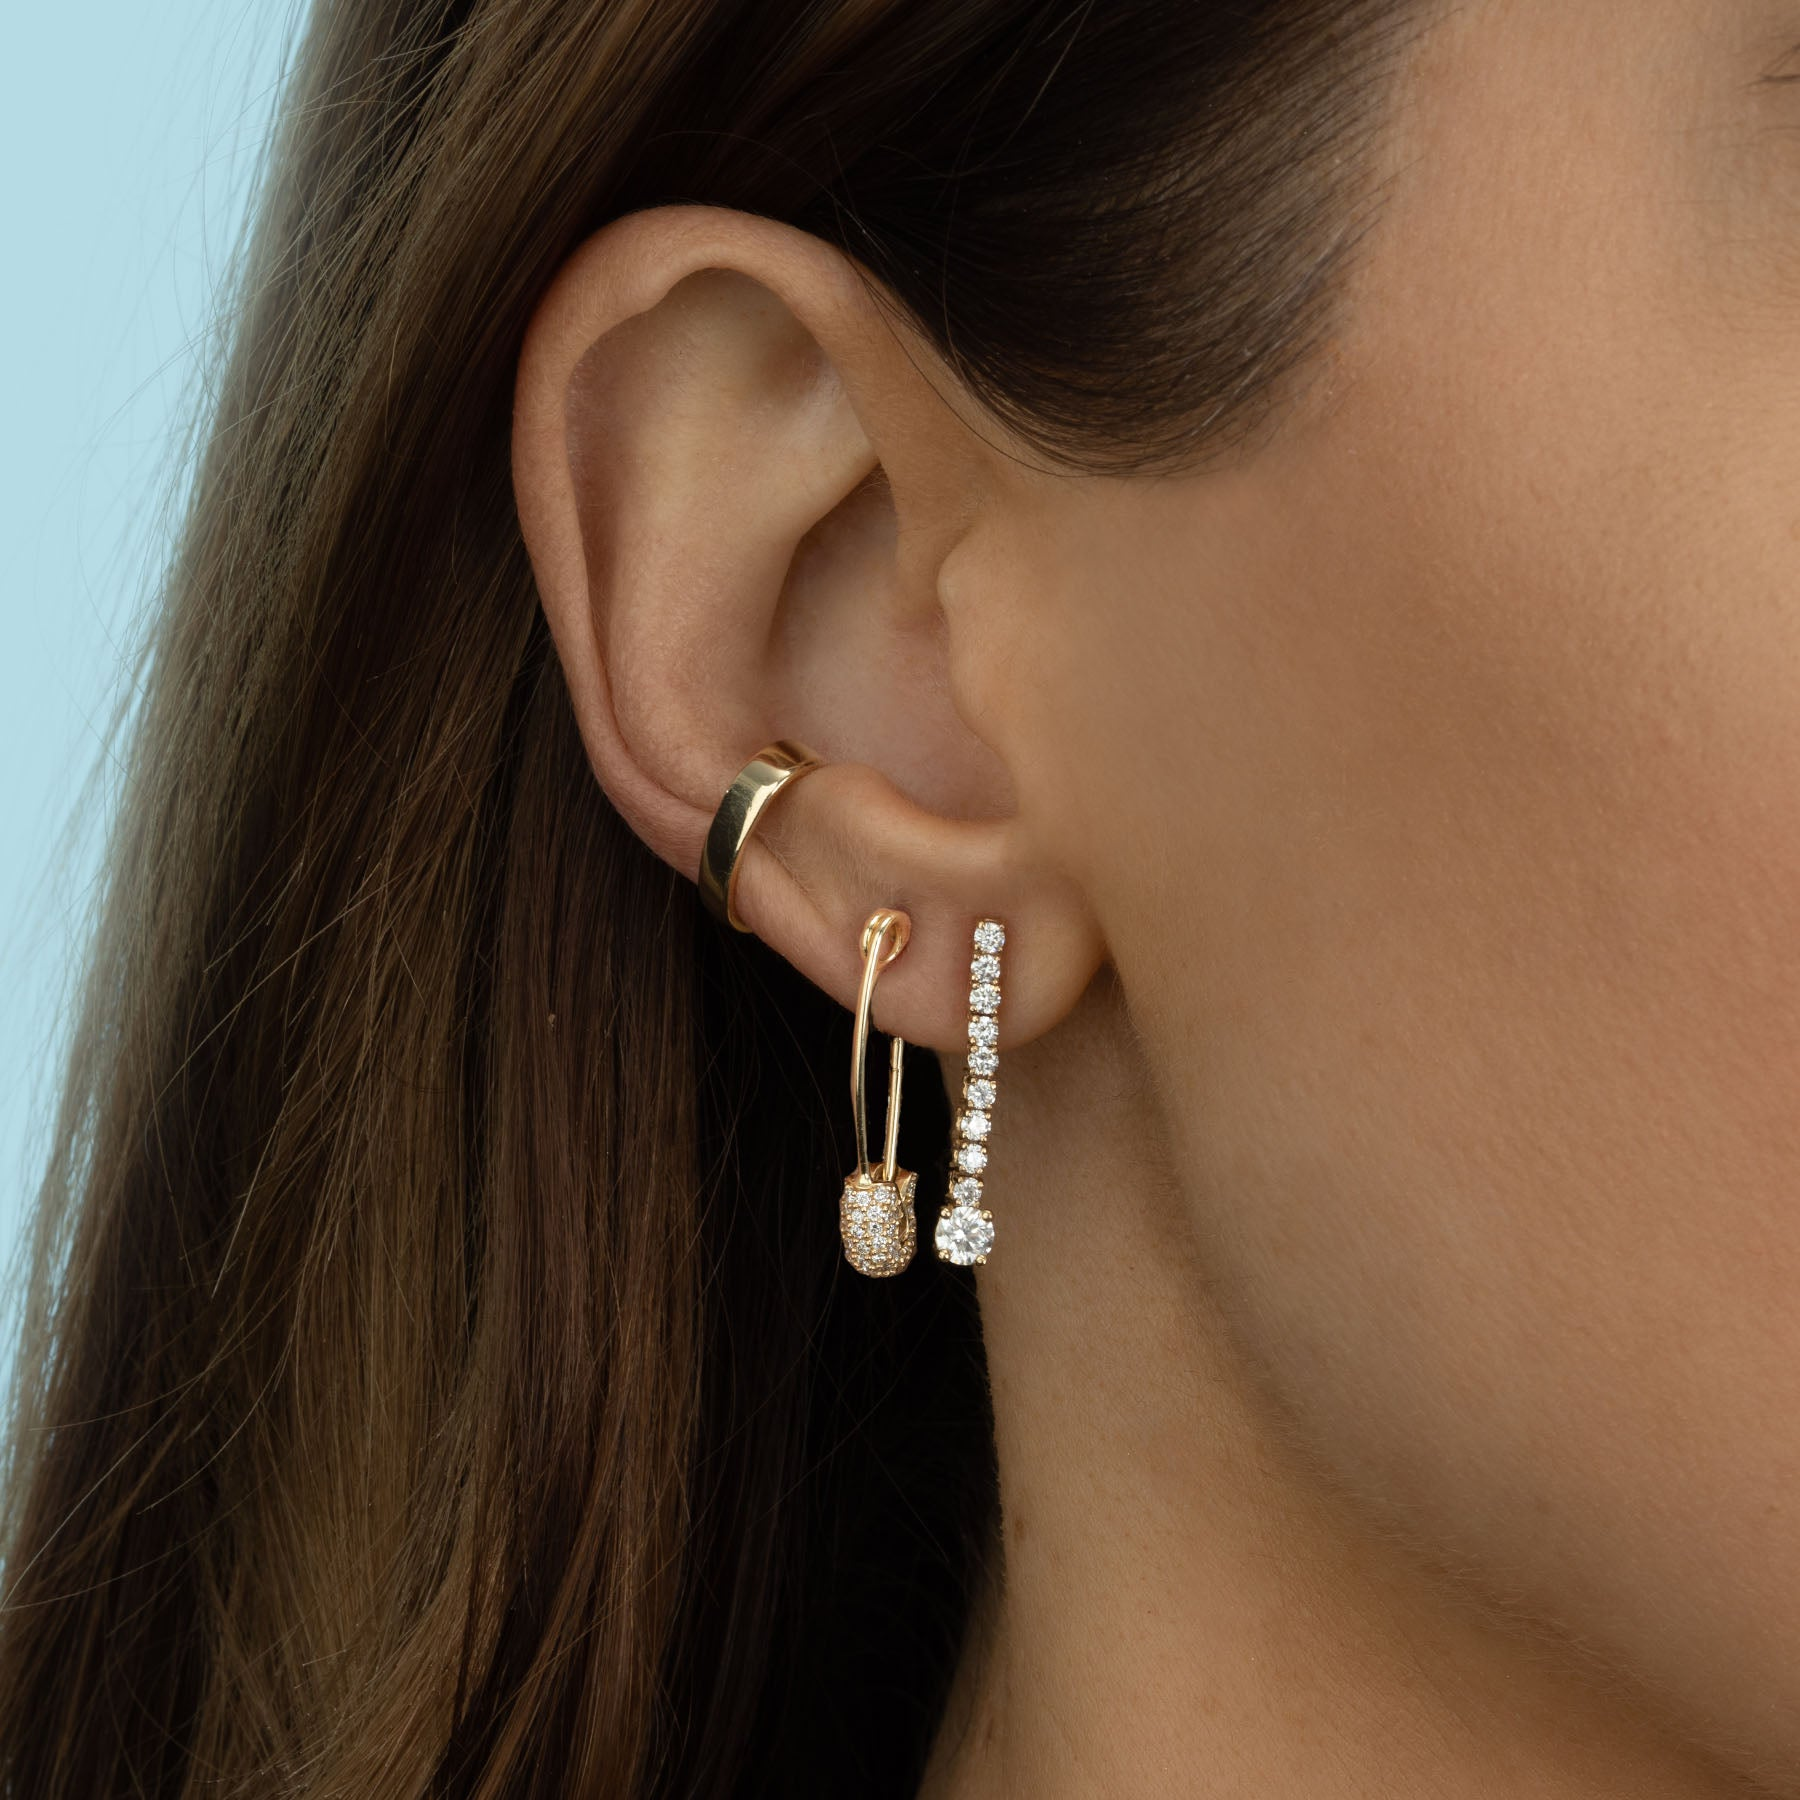 MEDIUM PAVÉ TOP SAFETY PIN EARRING